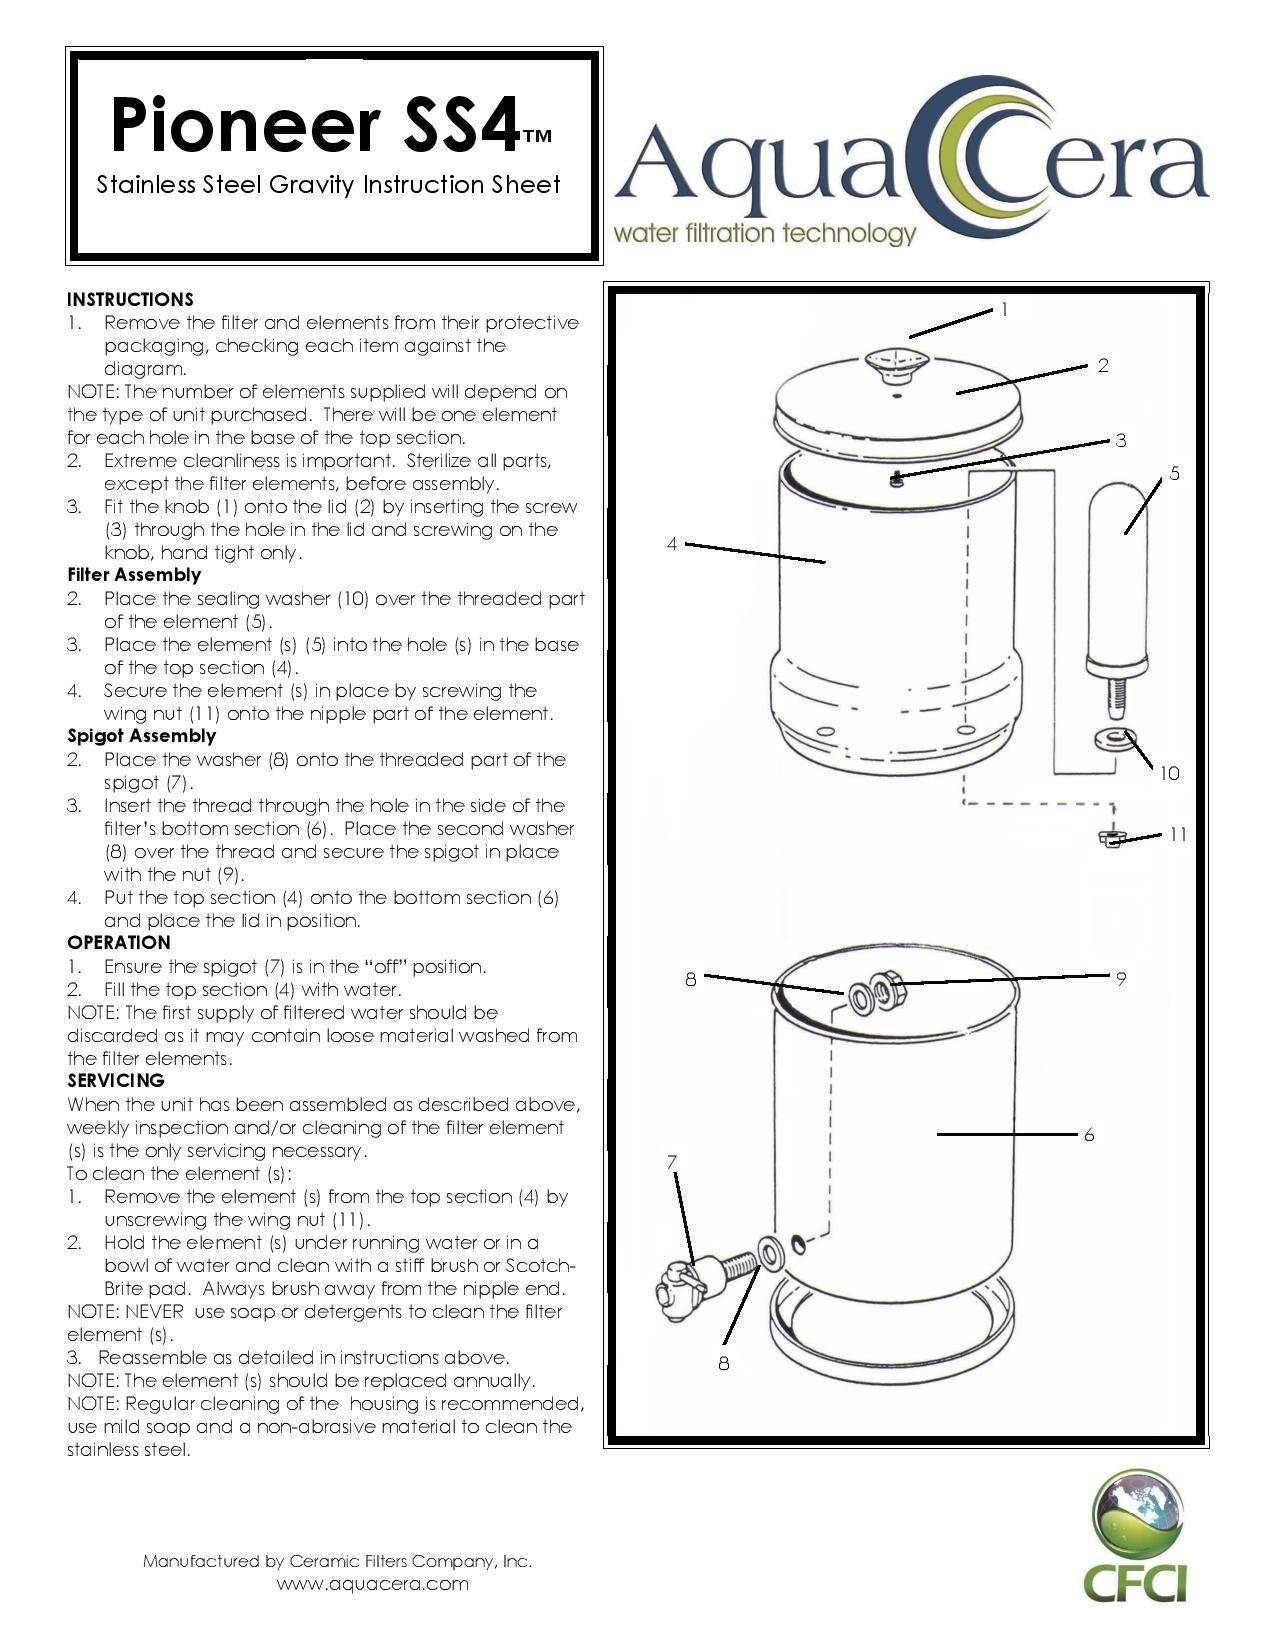 Pioneer SS4 Instruction Sheet